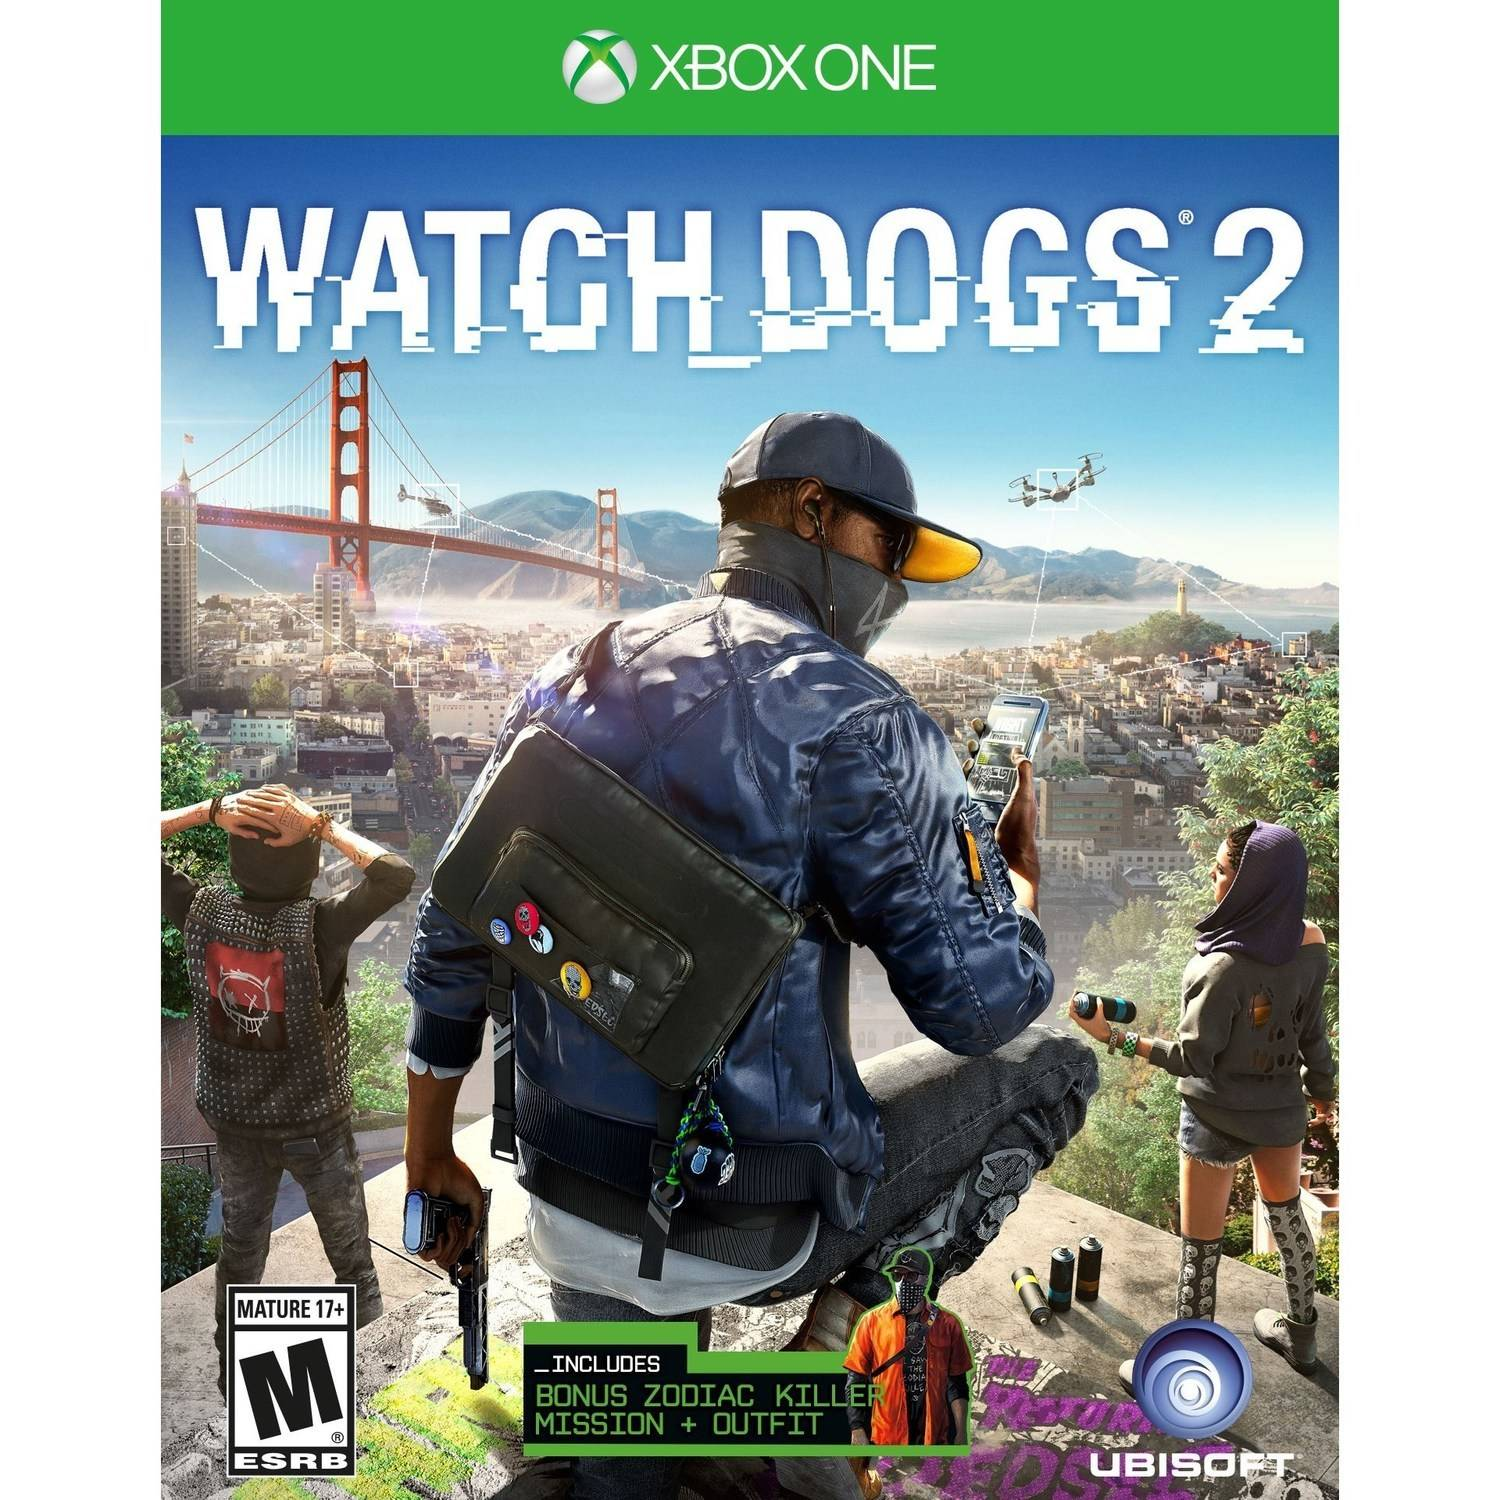 Watch Dogs 2 (Xbox One) Ubisoft, 887256022785 by Ubisoft